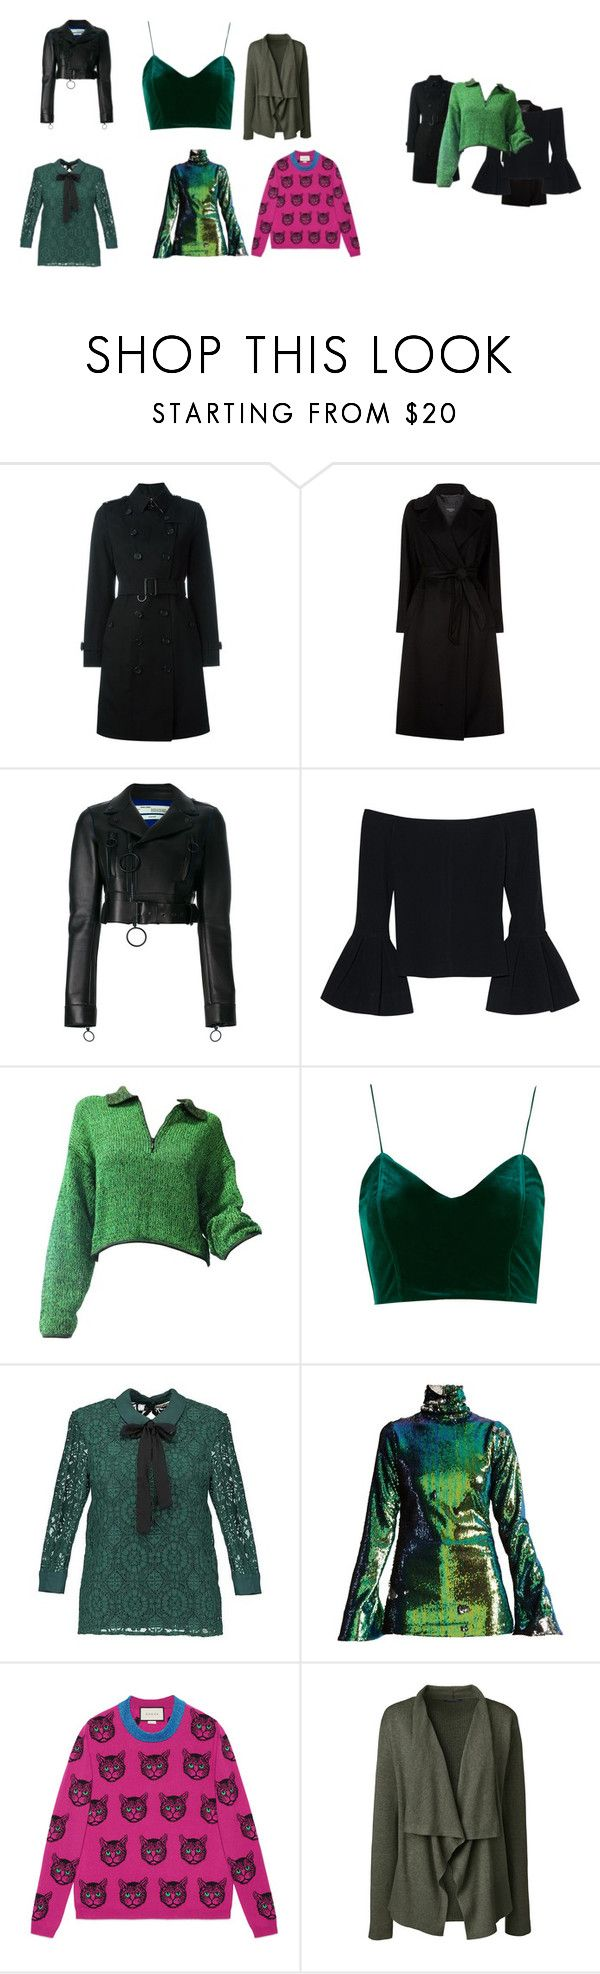 """""""Drizella's Top picks for tops."""" by whitneyball on Polyvore featuring Burberry, Weekend Max Mara, Off-White, Alexis, Jean-Paul Gaultier, Halpern, Gucci and Lands' End"""